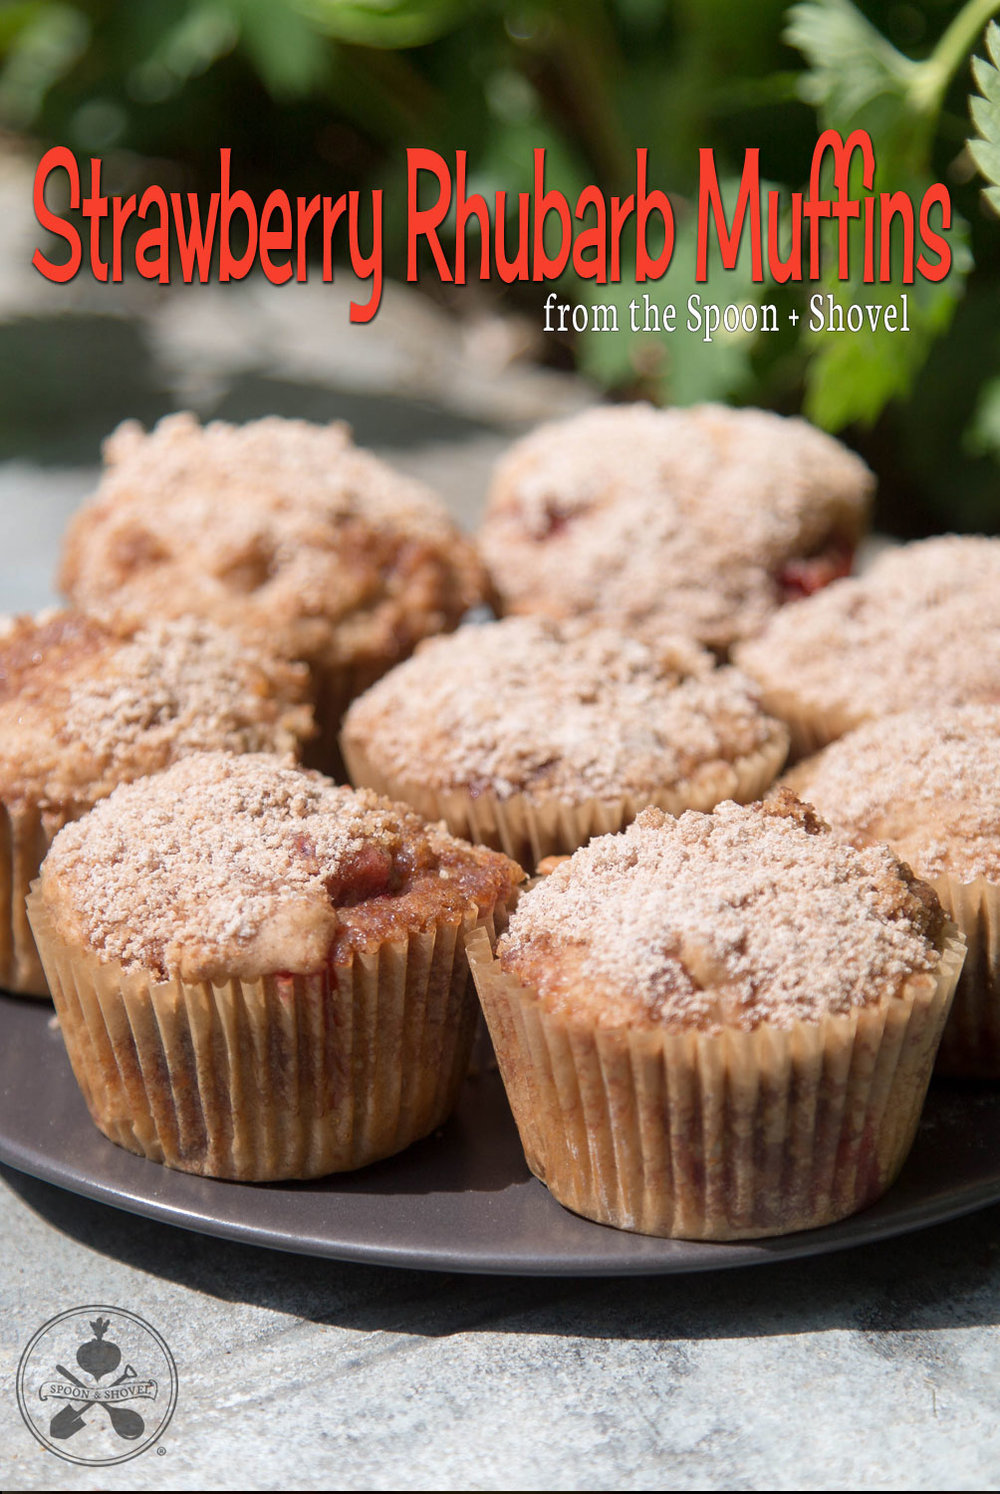 Vegan Strawberry Rhubarb Crumble Muffins from The Spoon + Shovel